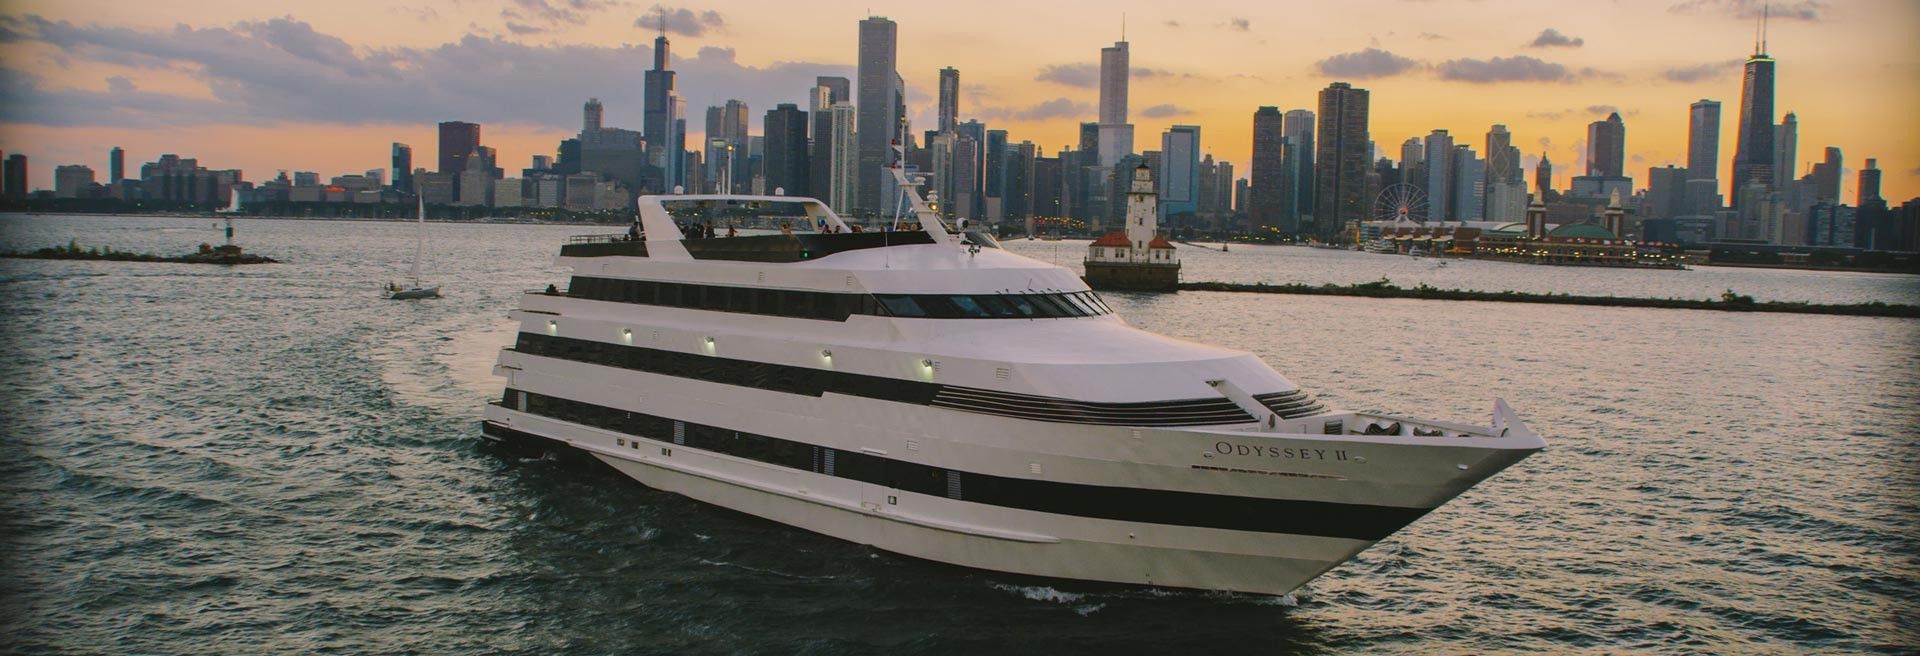 Chicago Dinner Cruise  Top 10 Things To Do In Chicago With Out of Town Guests